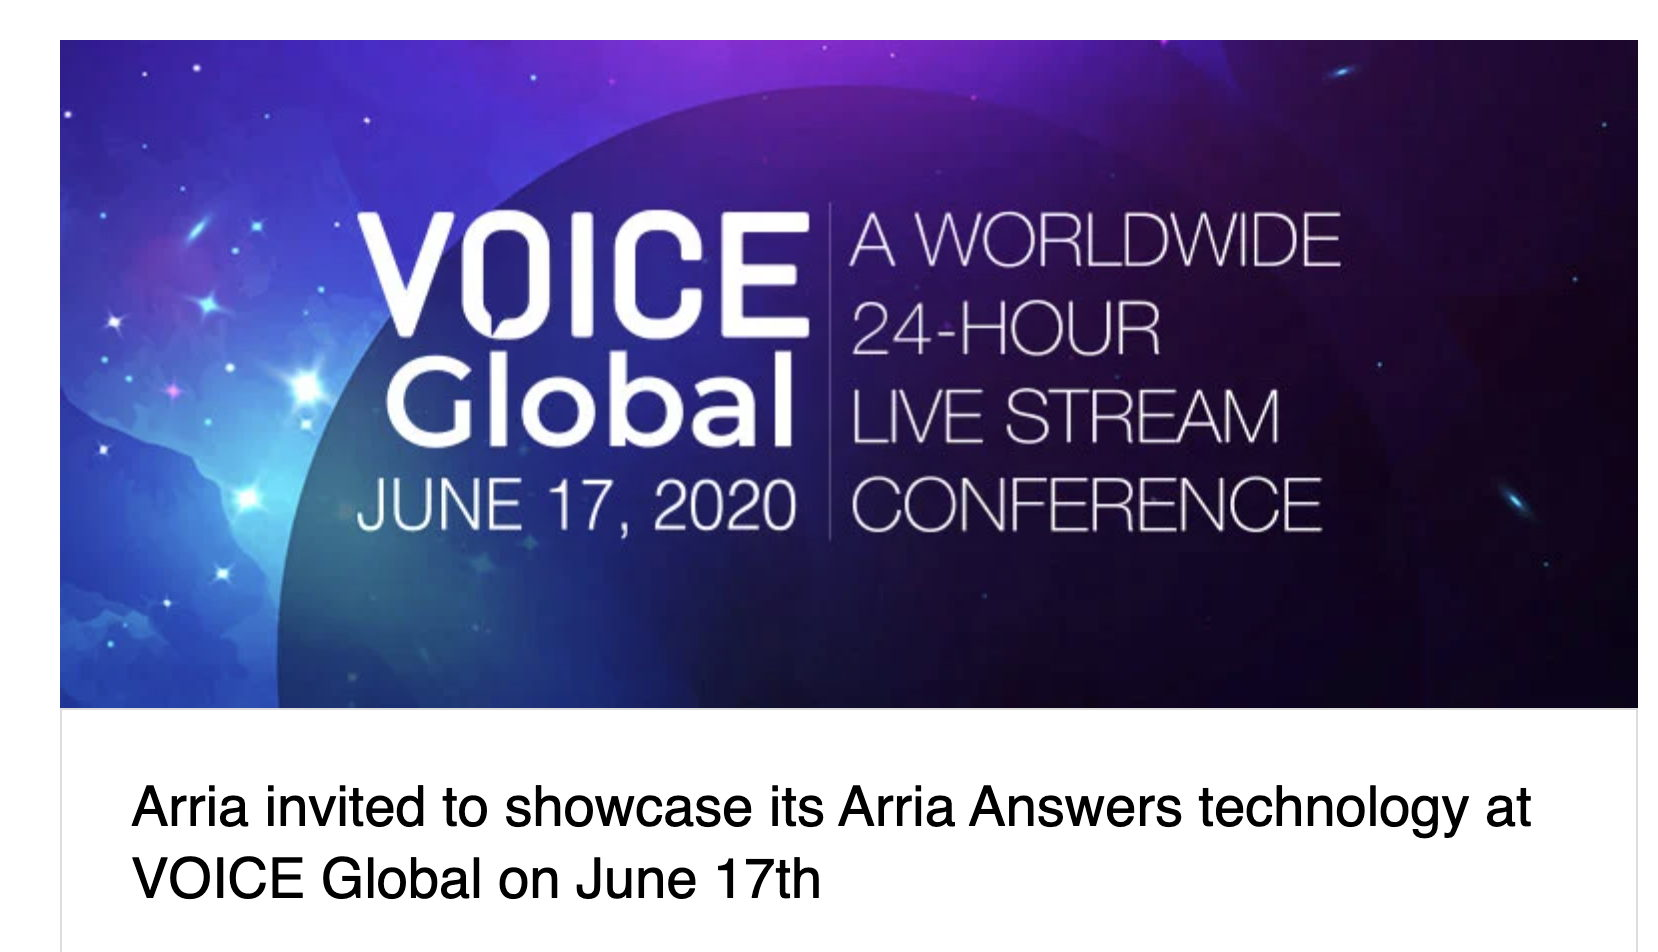 Arria invited to showcase its Arria Answers technology at VOICE Global on June 17th